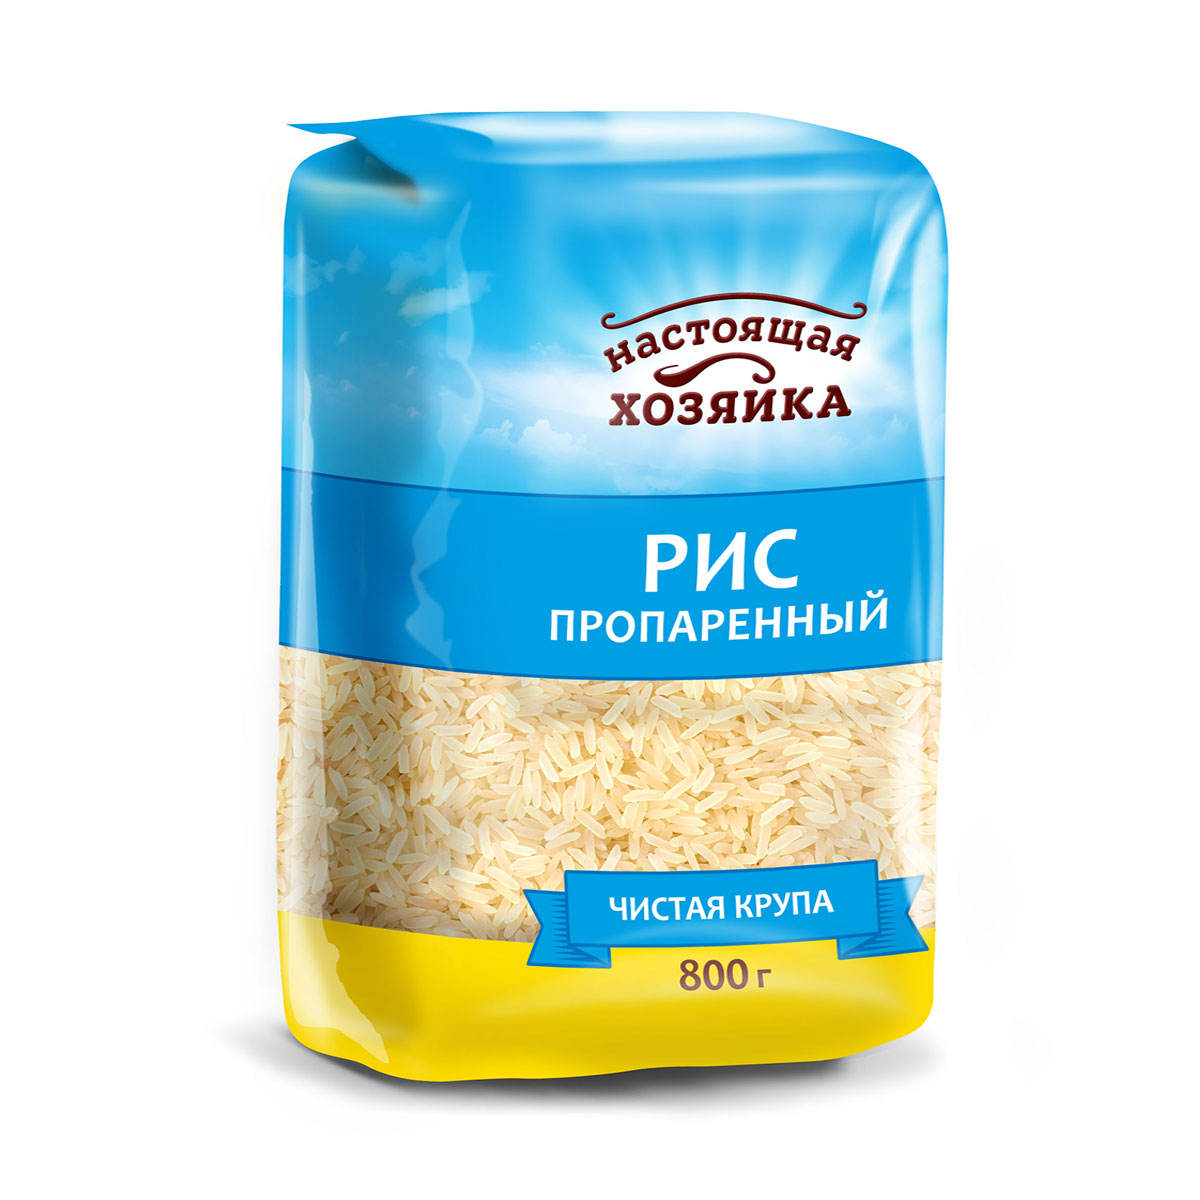 Packed parboiled rice, long grain. 800g, export prices